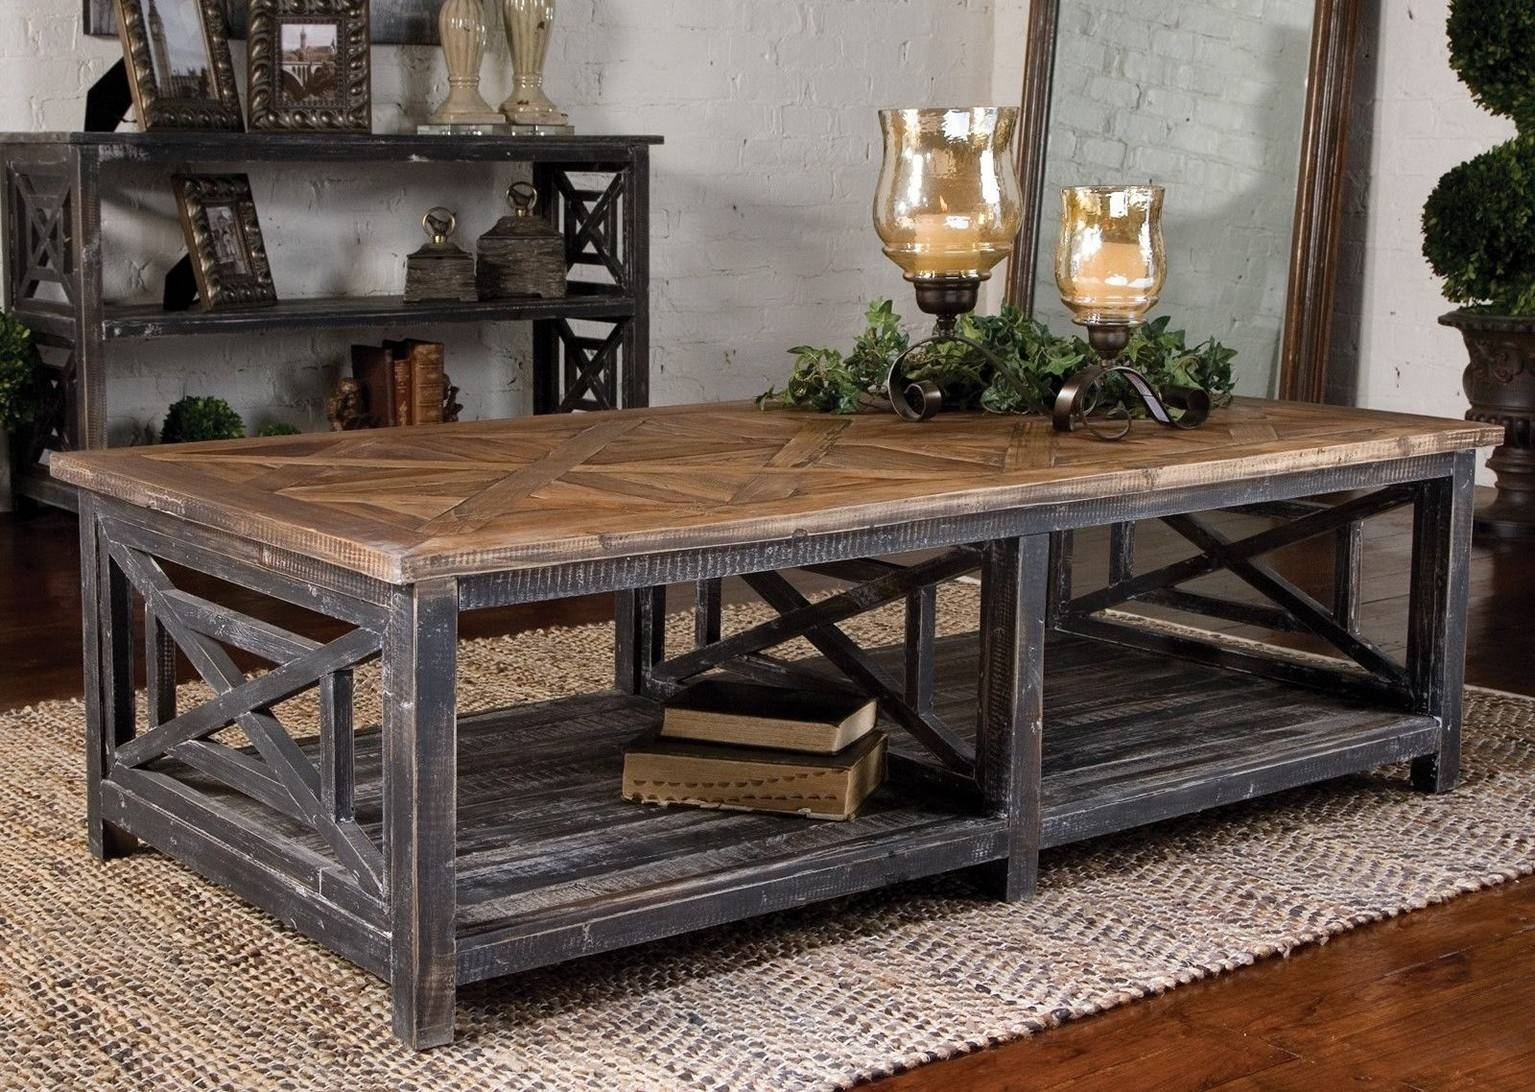 Stunning Rustic Coffee Table Ideas With Kitchen Beautiful Modern within Large Rustic Coffee Tables (Image 12 of 15)